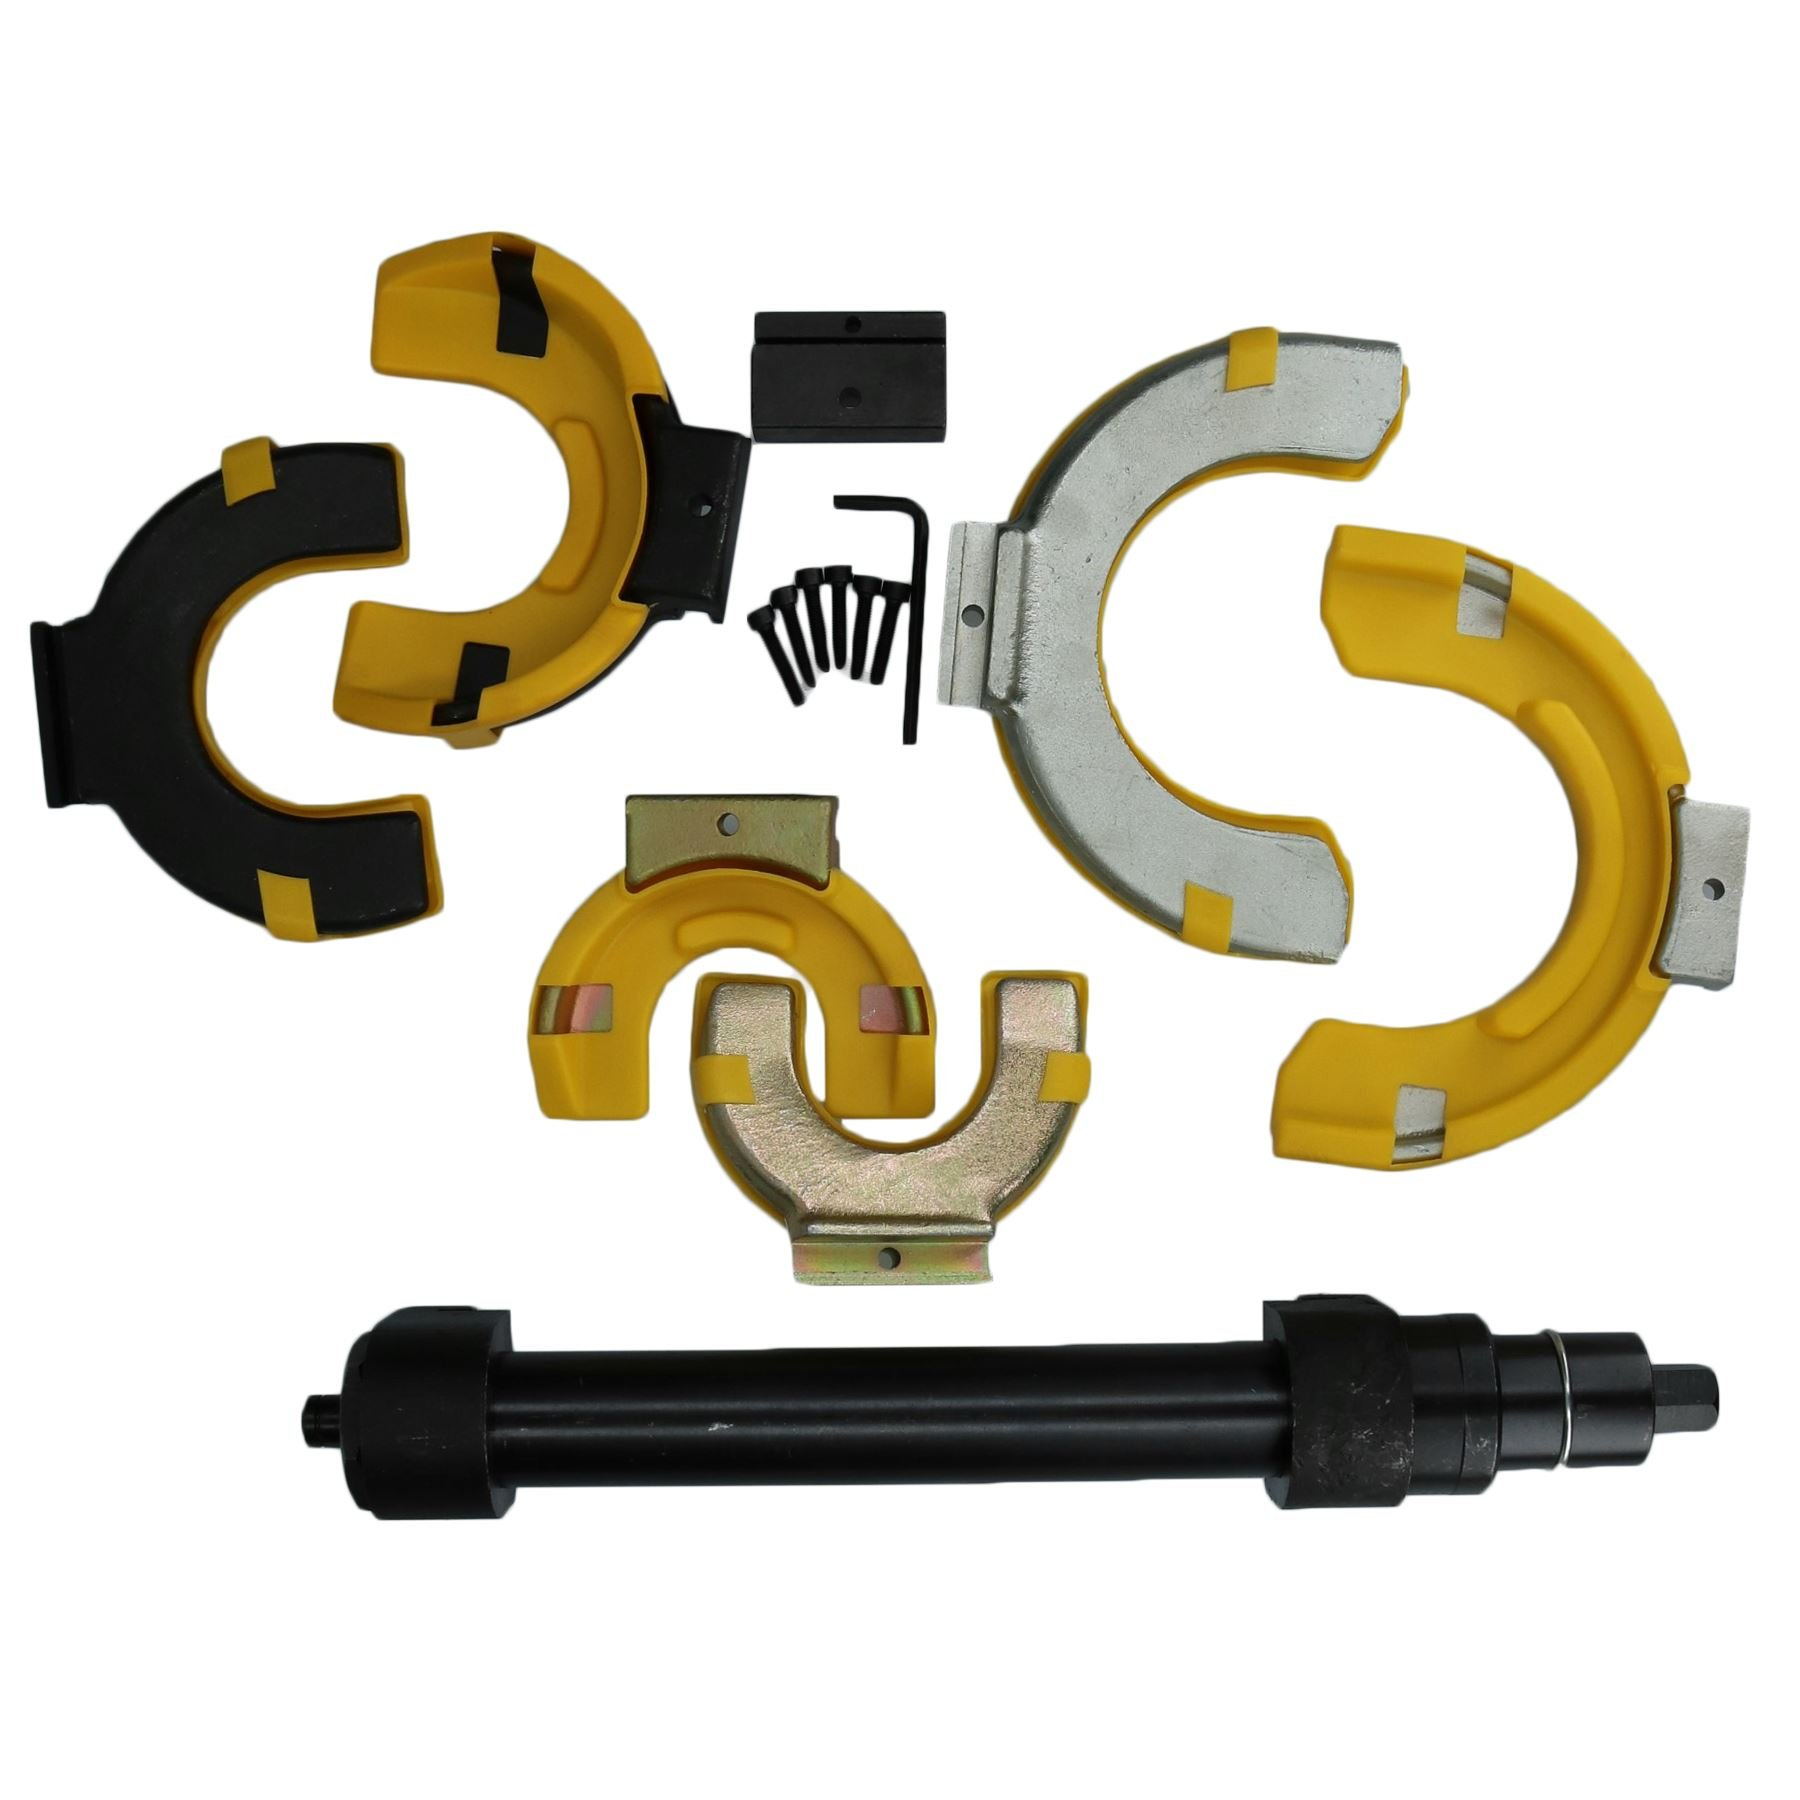 AB Tools-Toolzone McPherson Spring Compressor Coil Clamp Tuning Car Struts Suspension 65-212mm by AB Tools-Toolzone (Image #3)